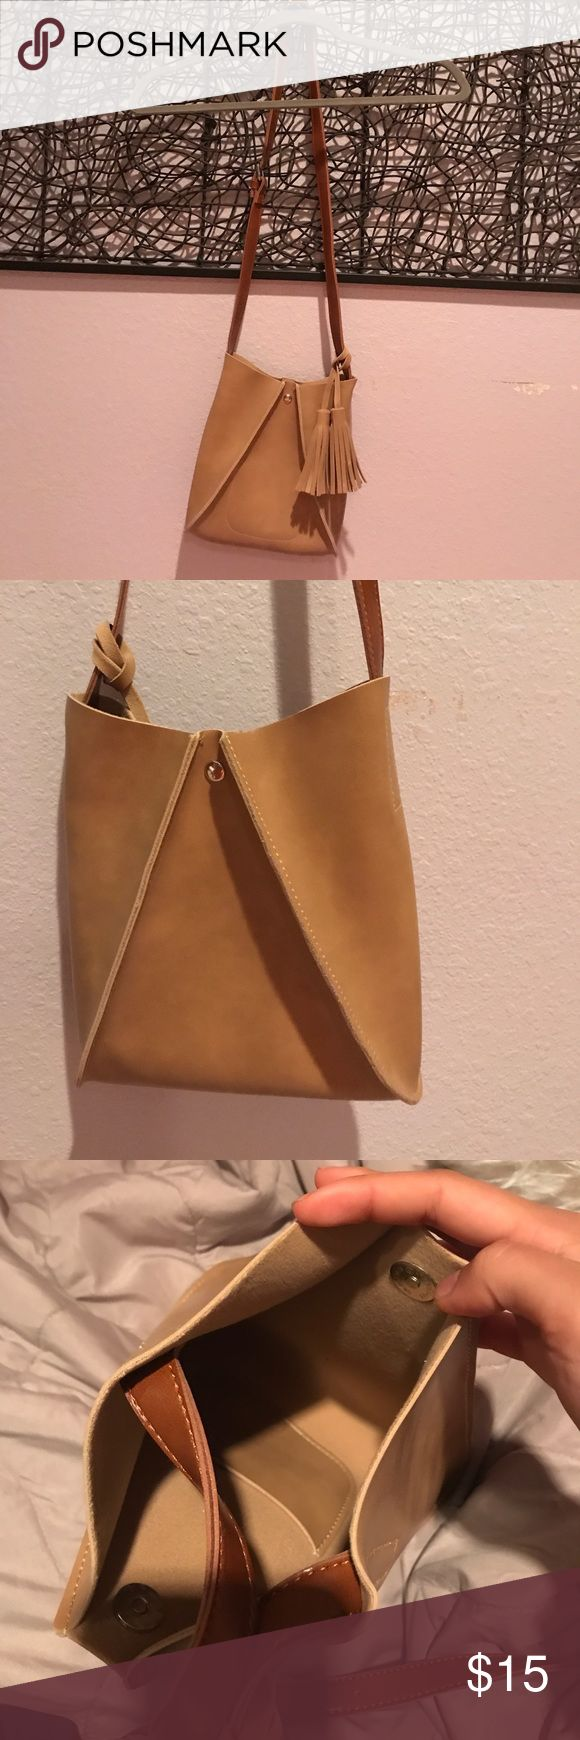 Brand New Bucket Purse Never used leather bucket purse, perfect condition, very stylish! Bags